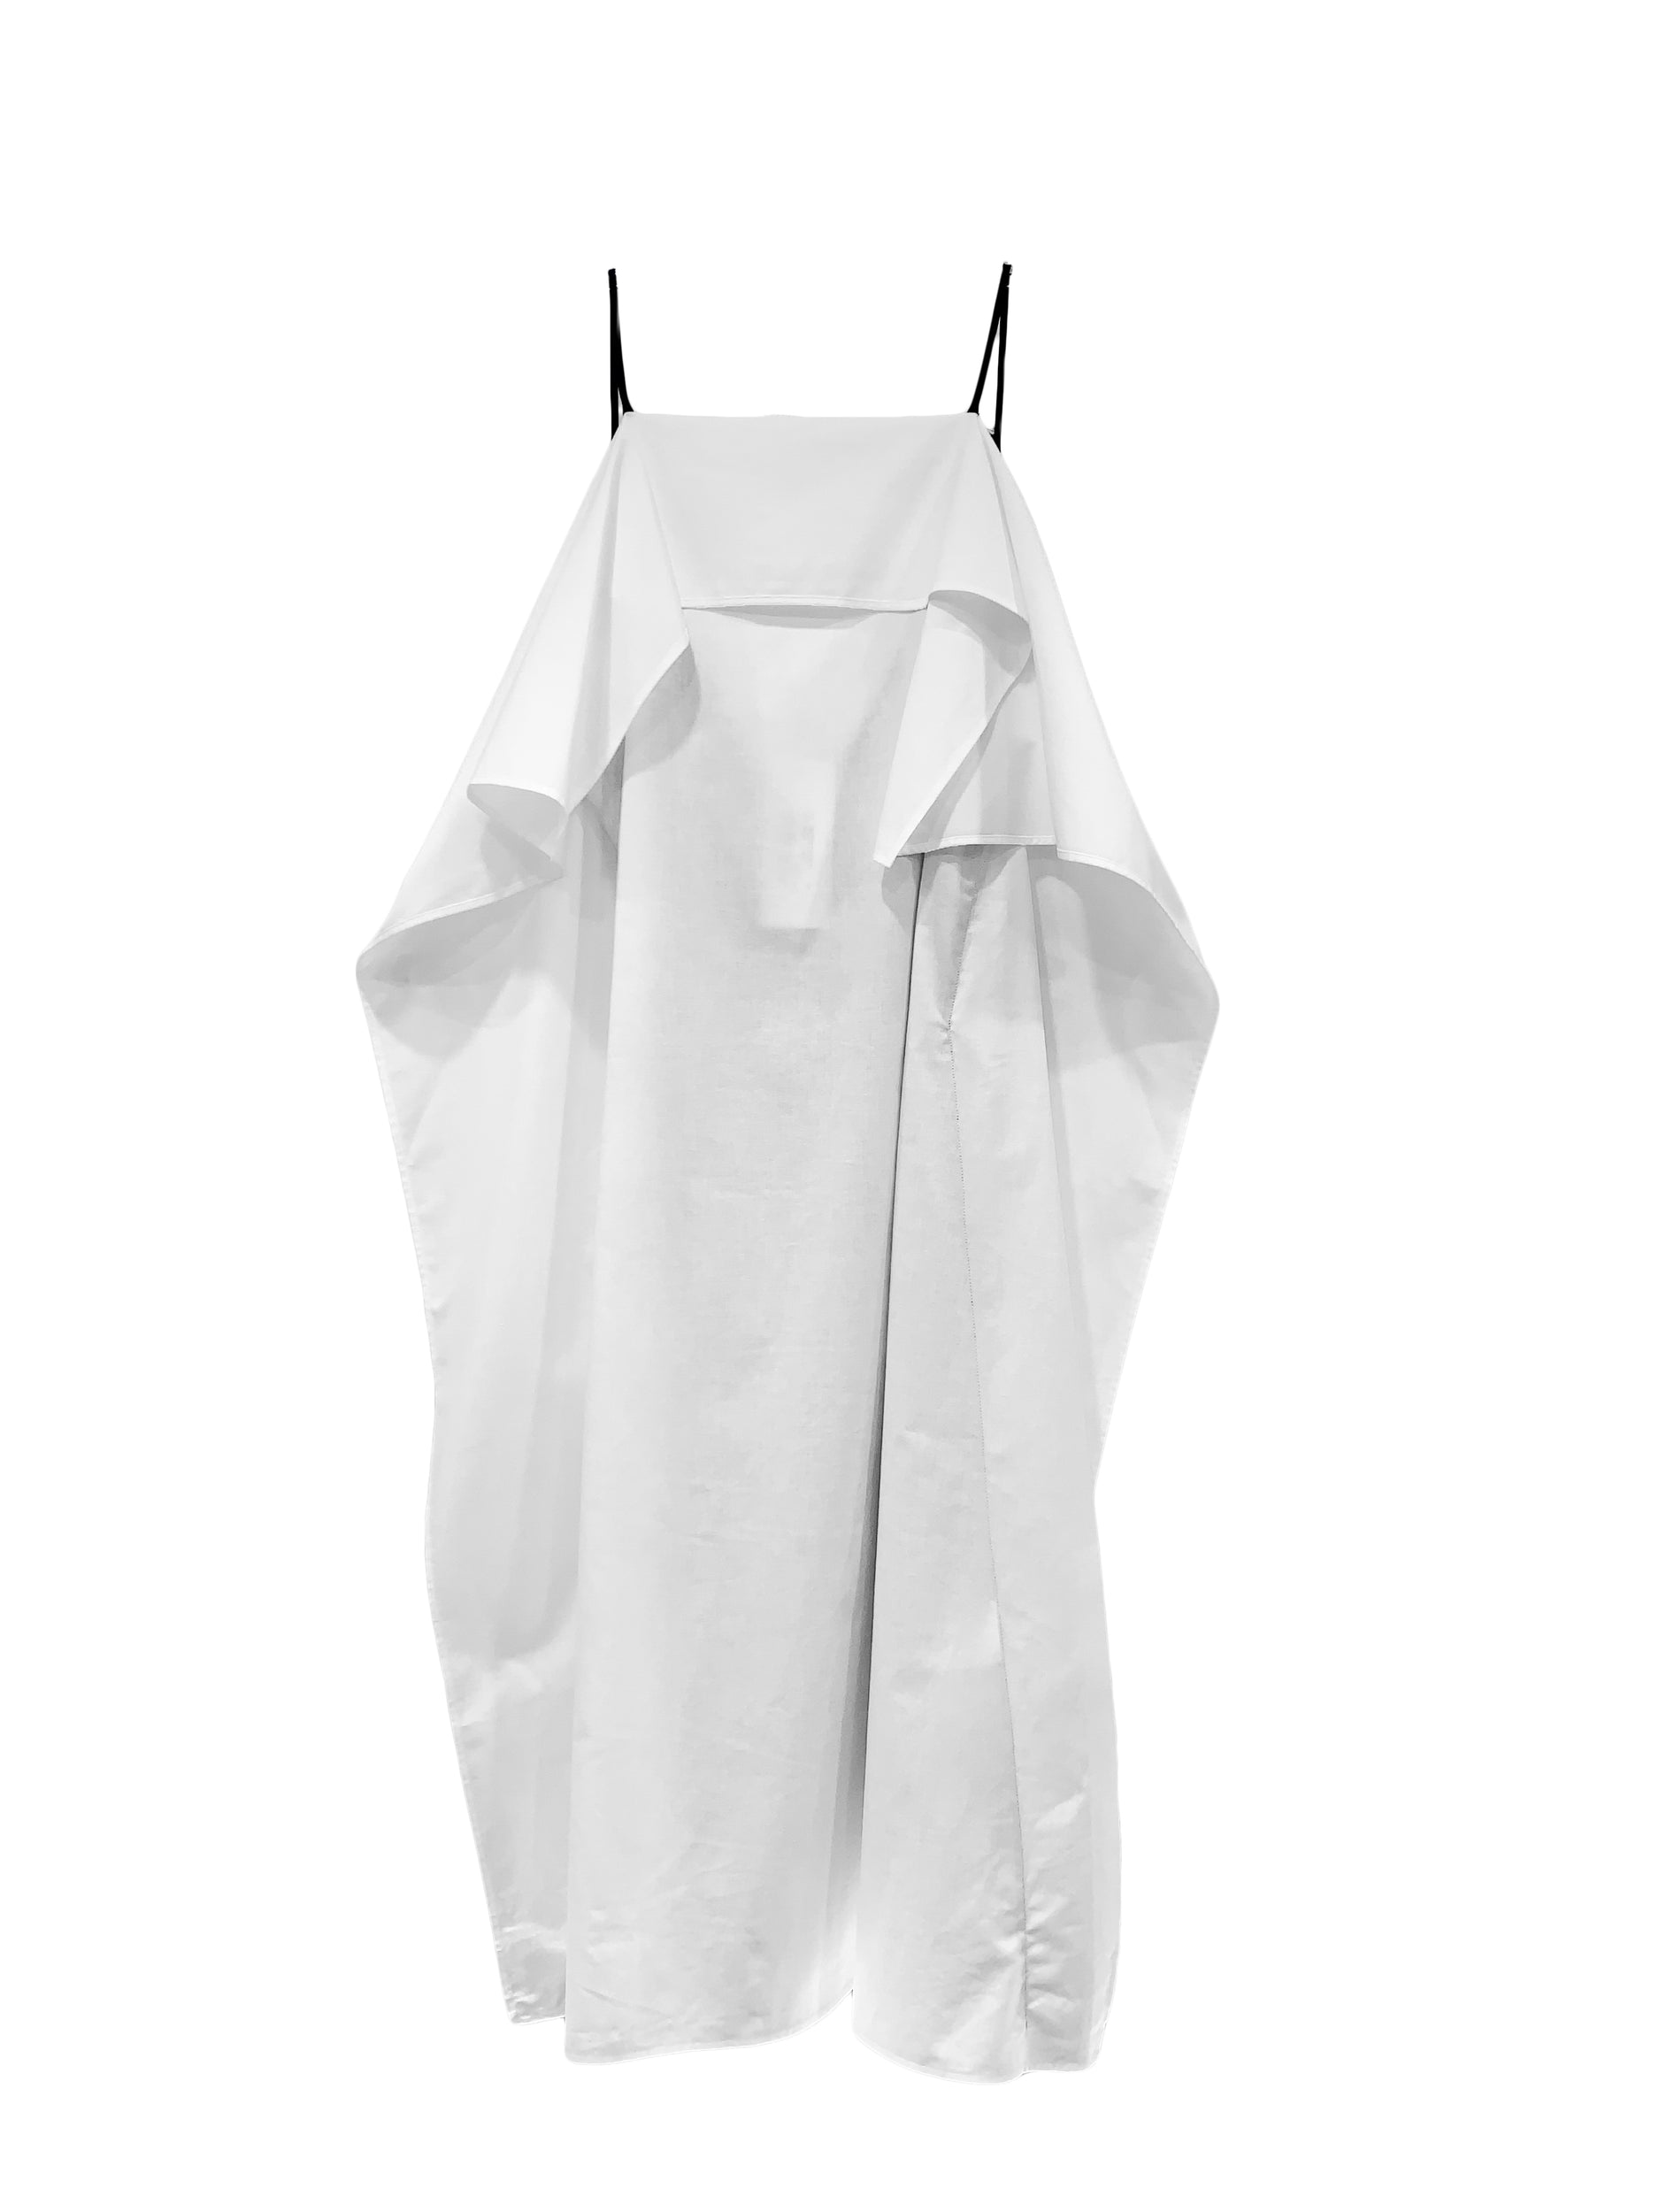 Lace Slip Dress DRESS MM6 Maison Margiela - NOLM - Clothes Online - nolmau.com - Sydney-Australia Online Shopping